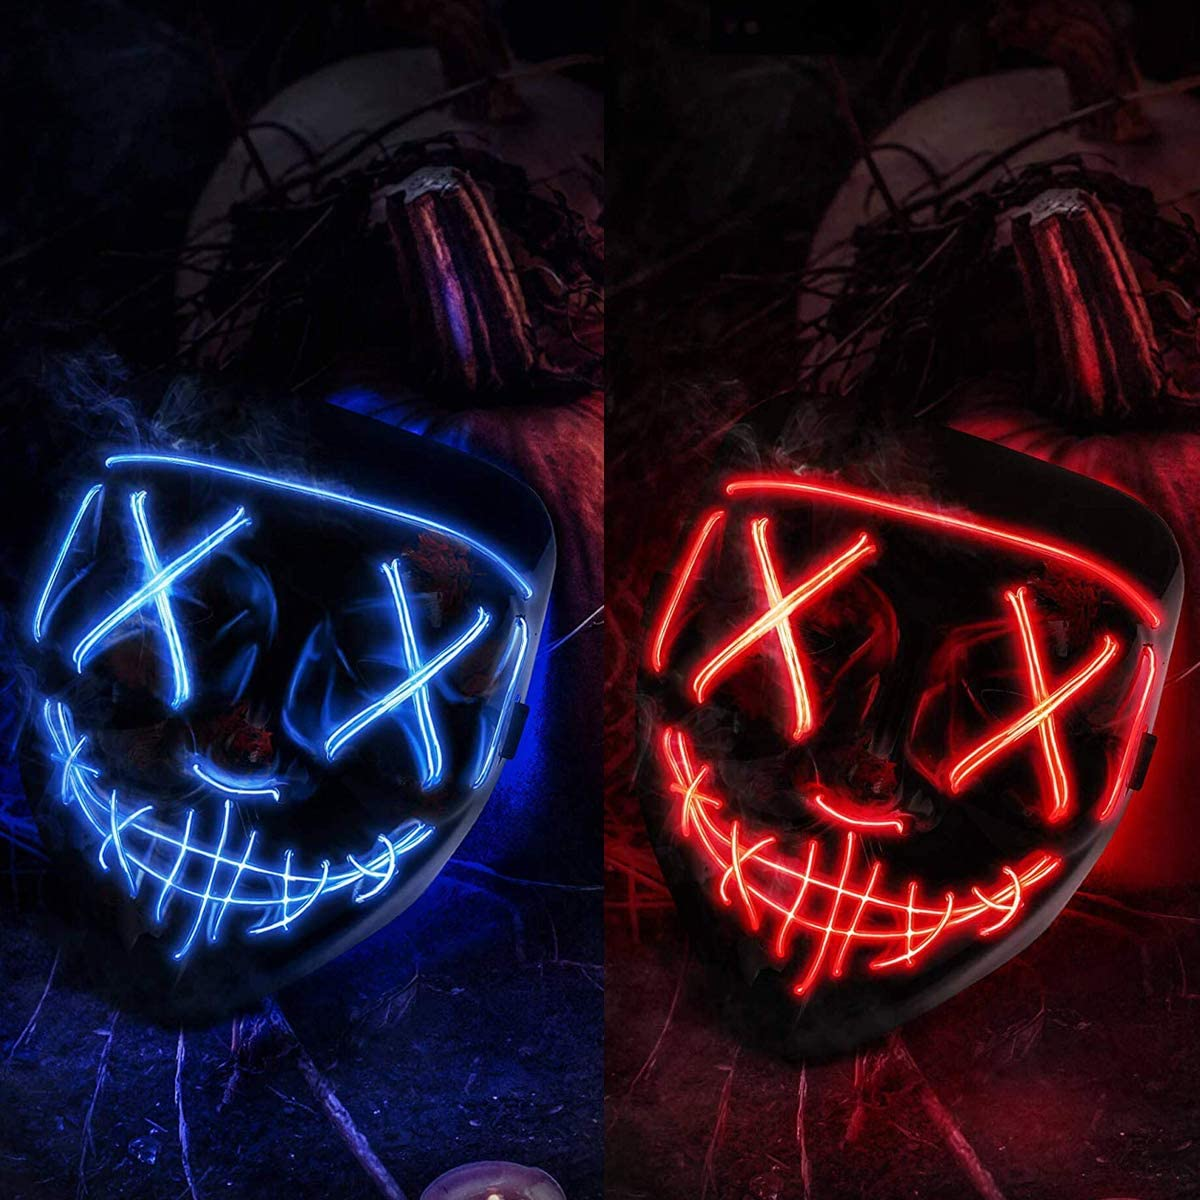 2 Pack Halloween Mask LED Light up Mask Scary mask for Festival Cosplay Halloween Costume Masquerade Parties,Carnival